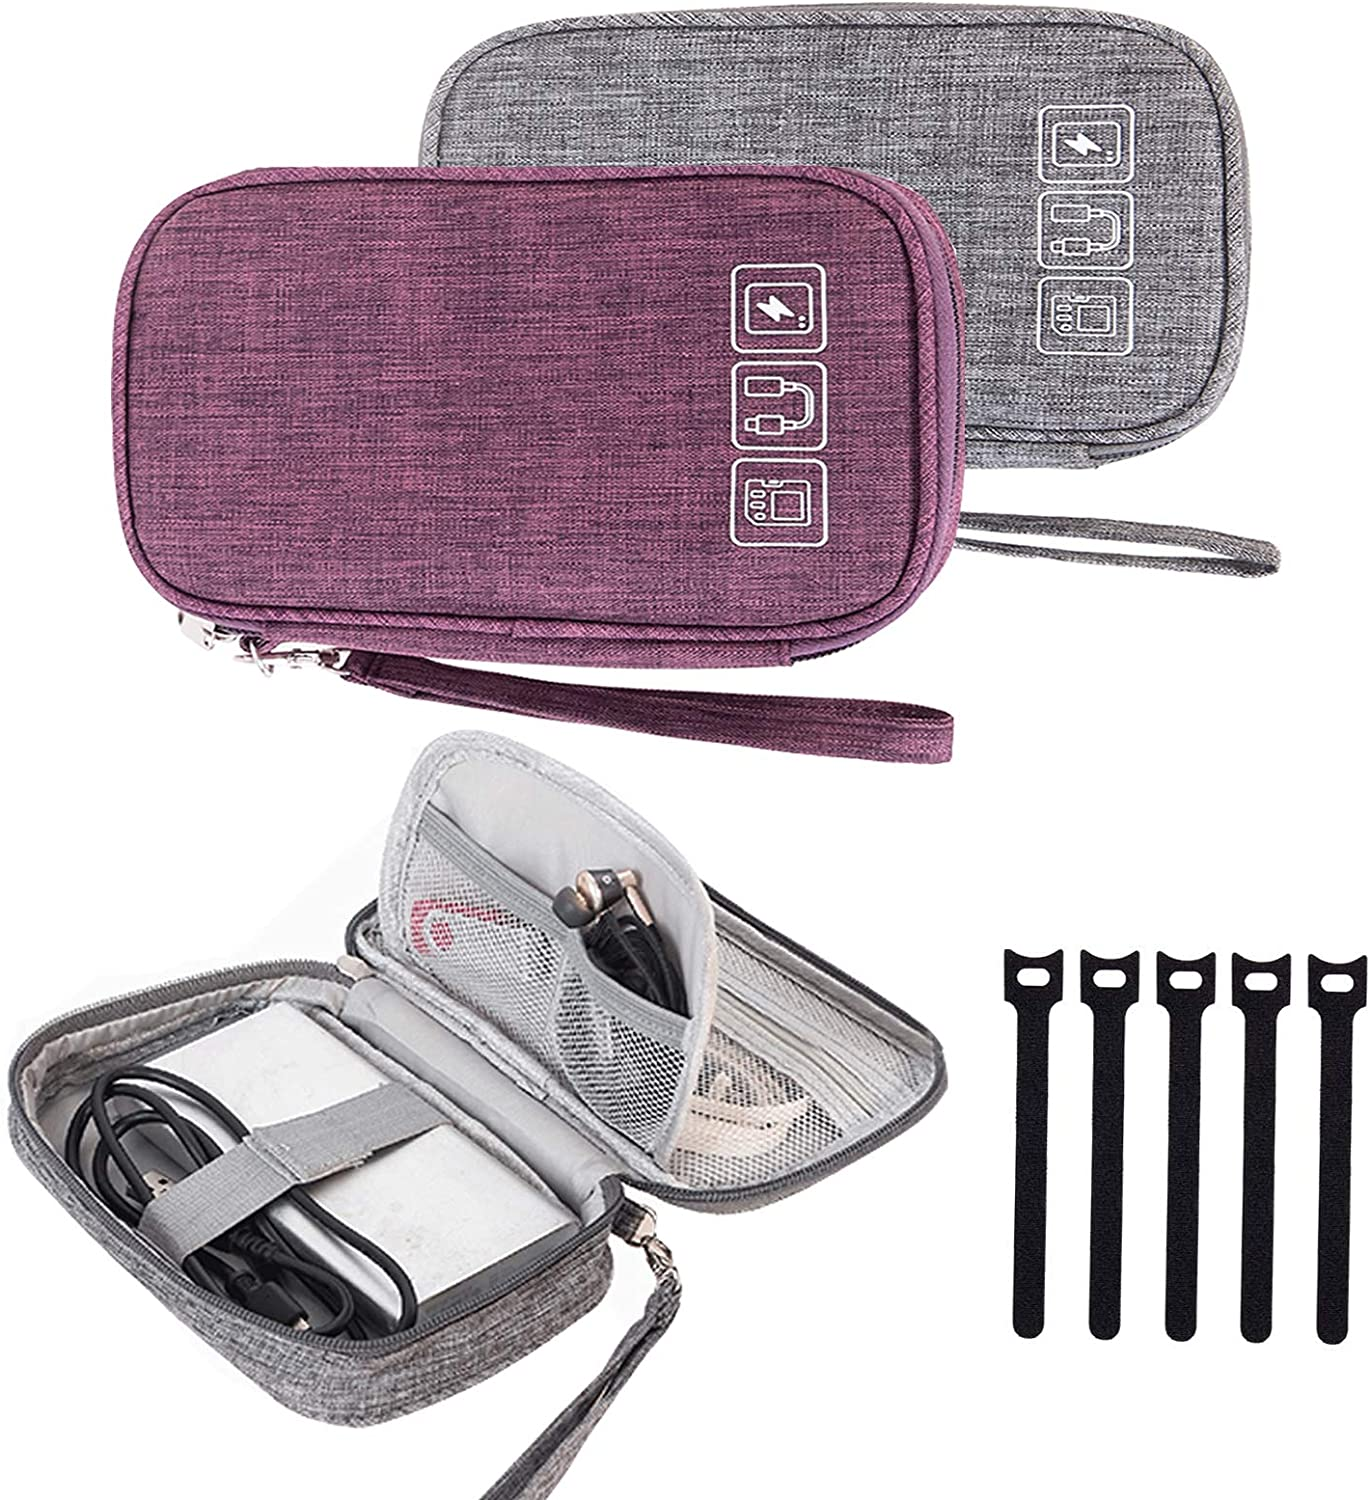 Cable Organizer Bag, 2 PCS Travel Cord Organizer Case Small Electronic Accessories Carry Bag Portable for Cable, Cord, Charger, Hard Drive, Earphone, USB,SD Card with 5 Cable Ties (Gray+Purple)